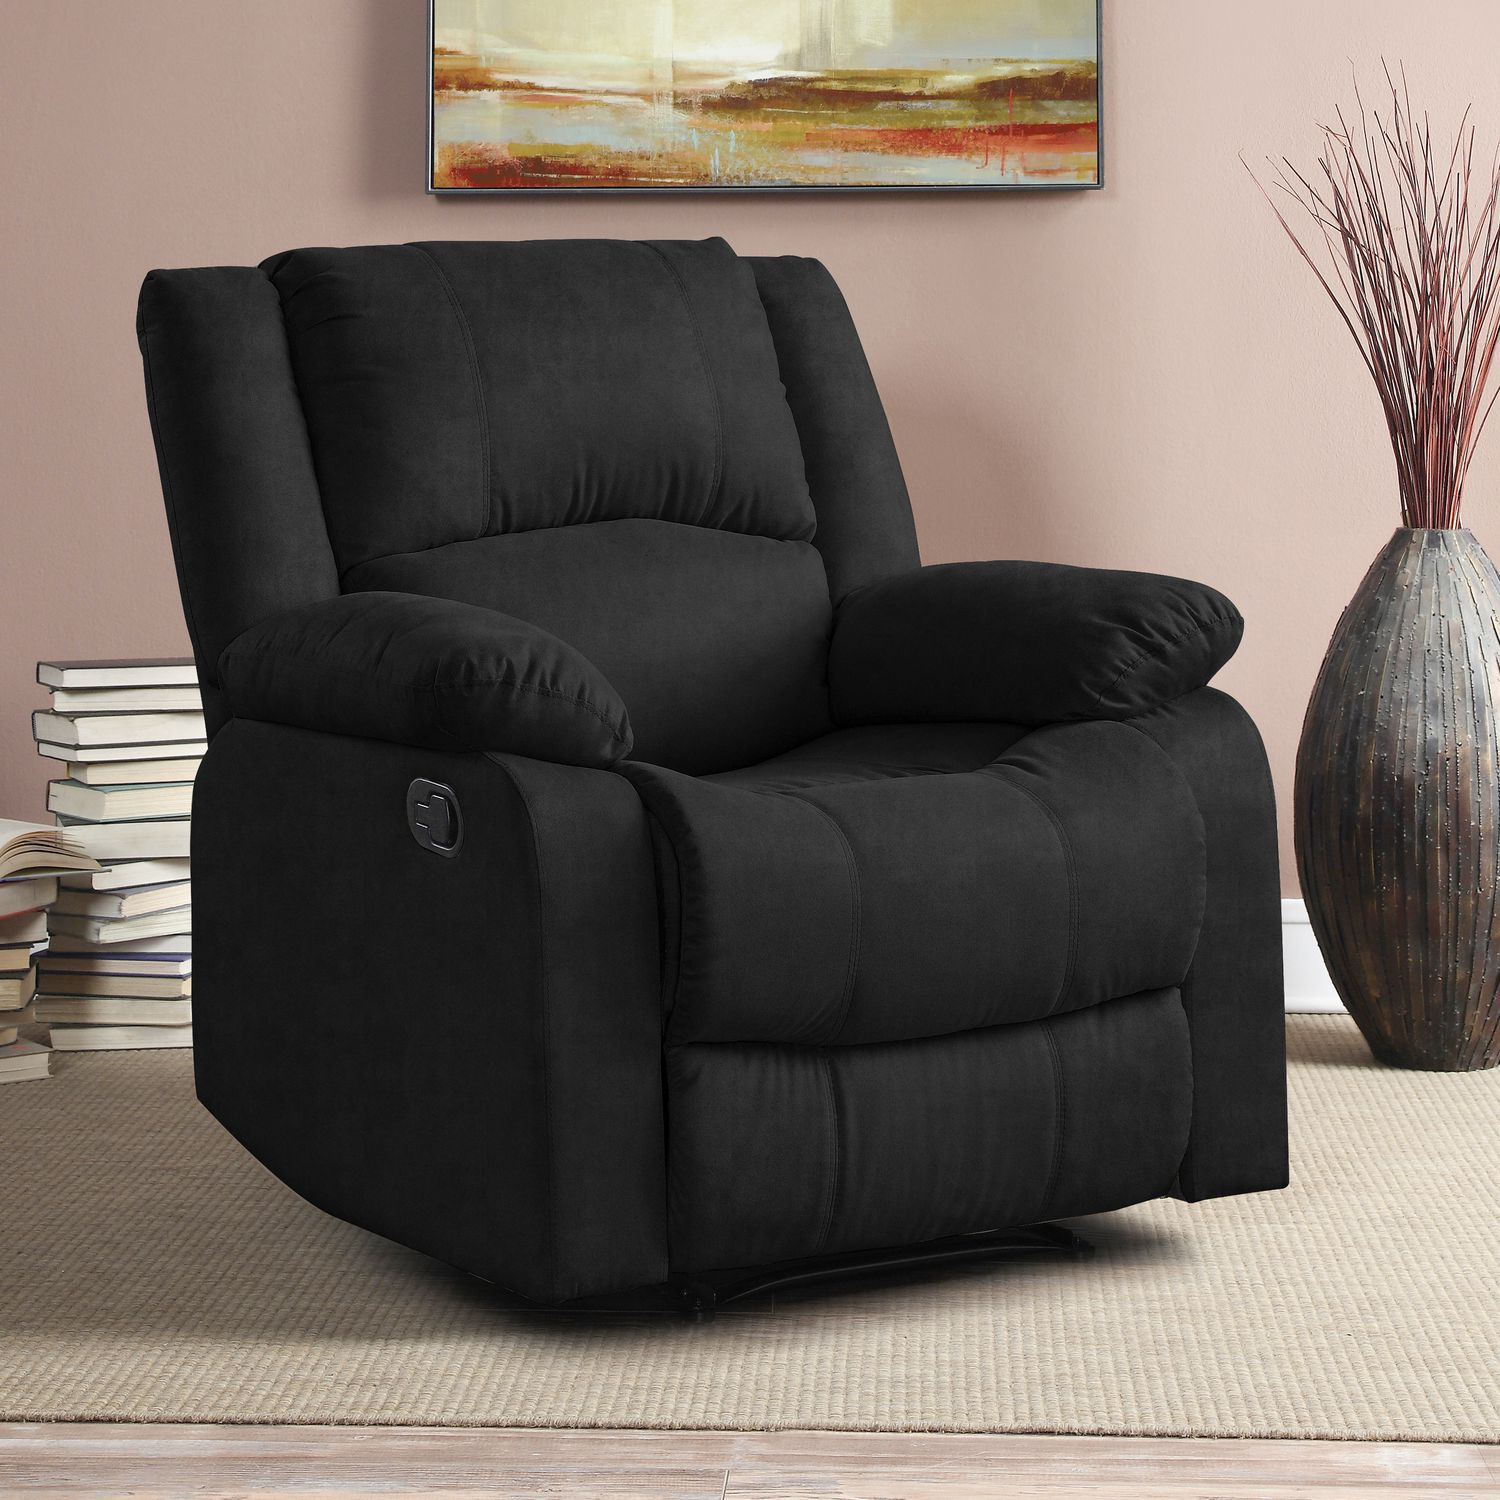 Recliner Chairs & Recliner Sofas at Walmart Canada